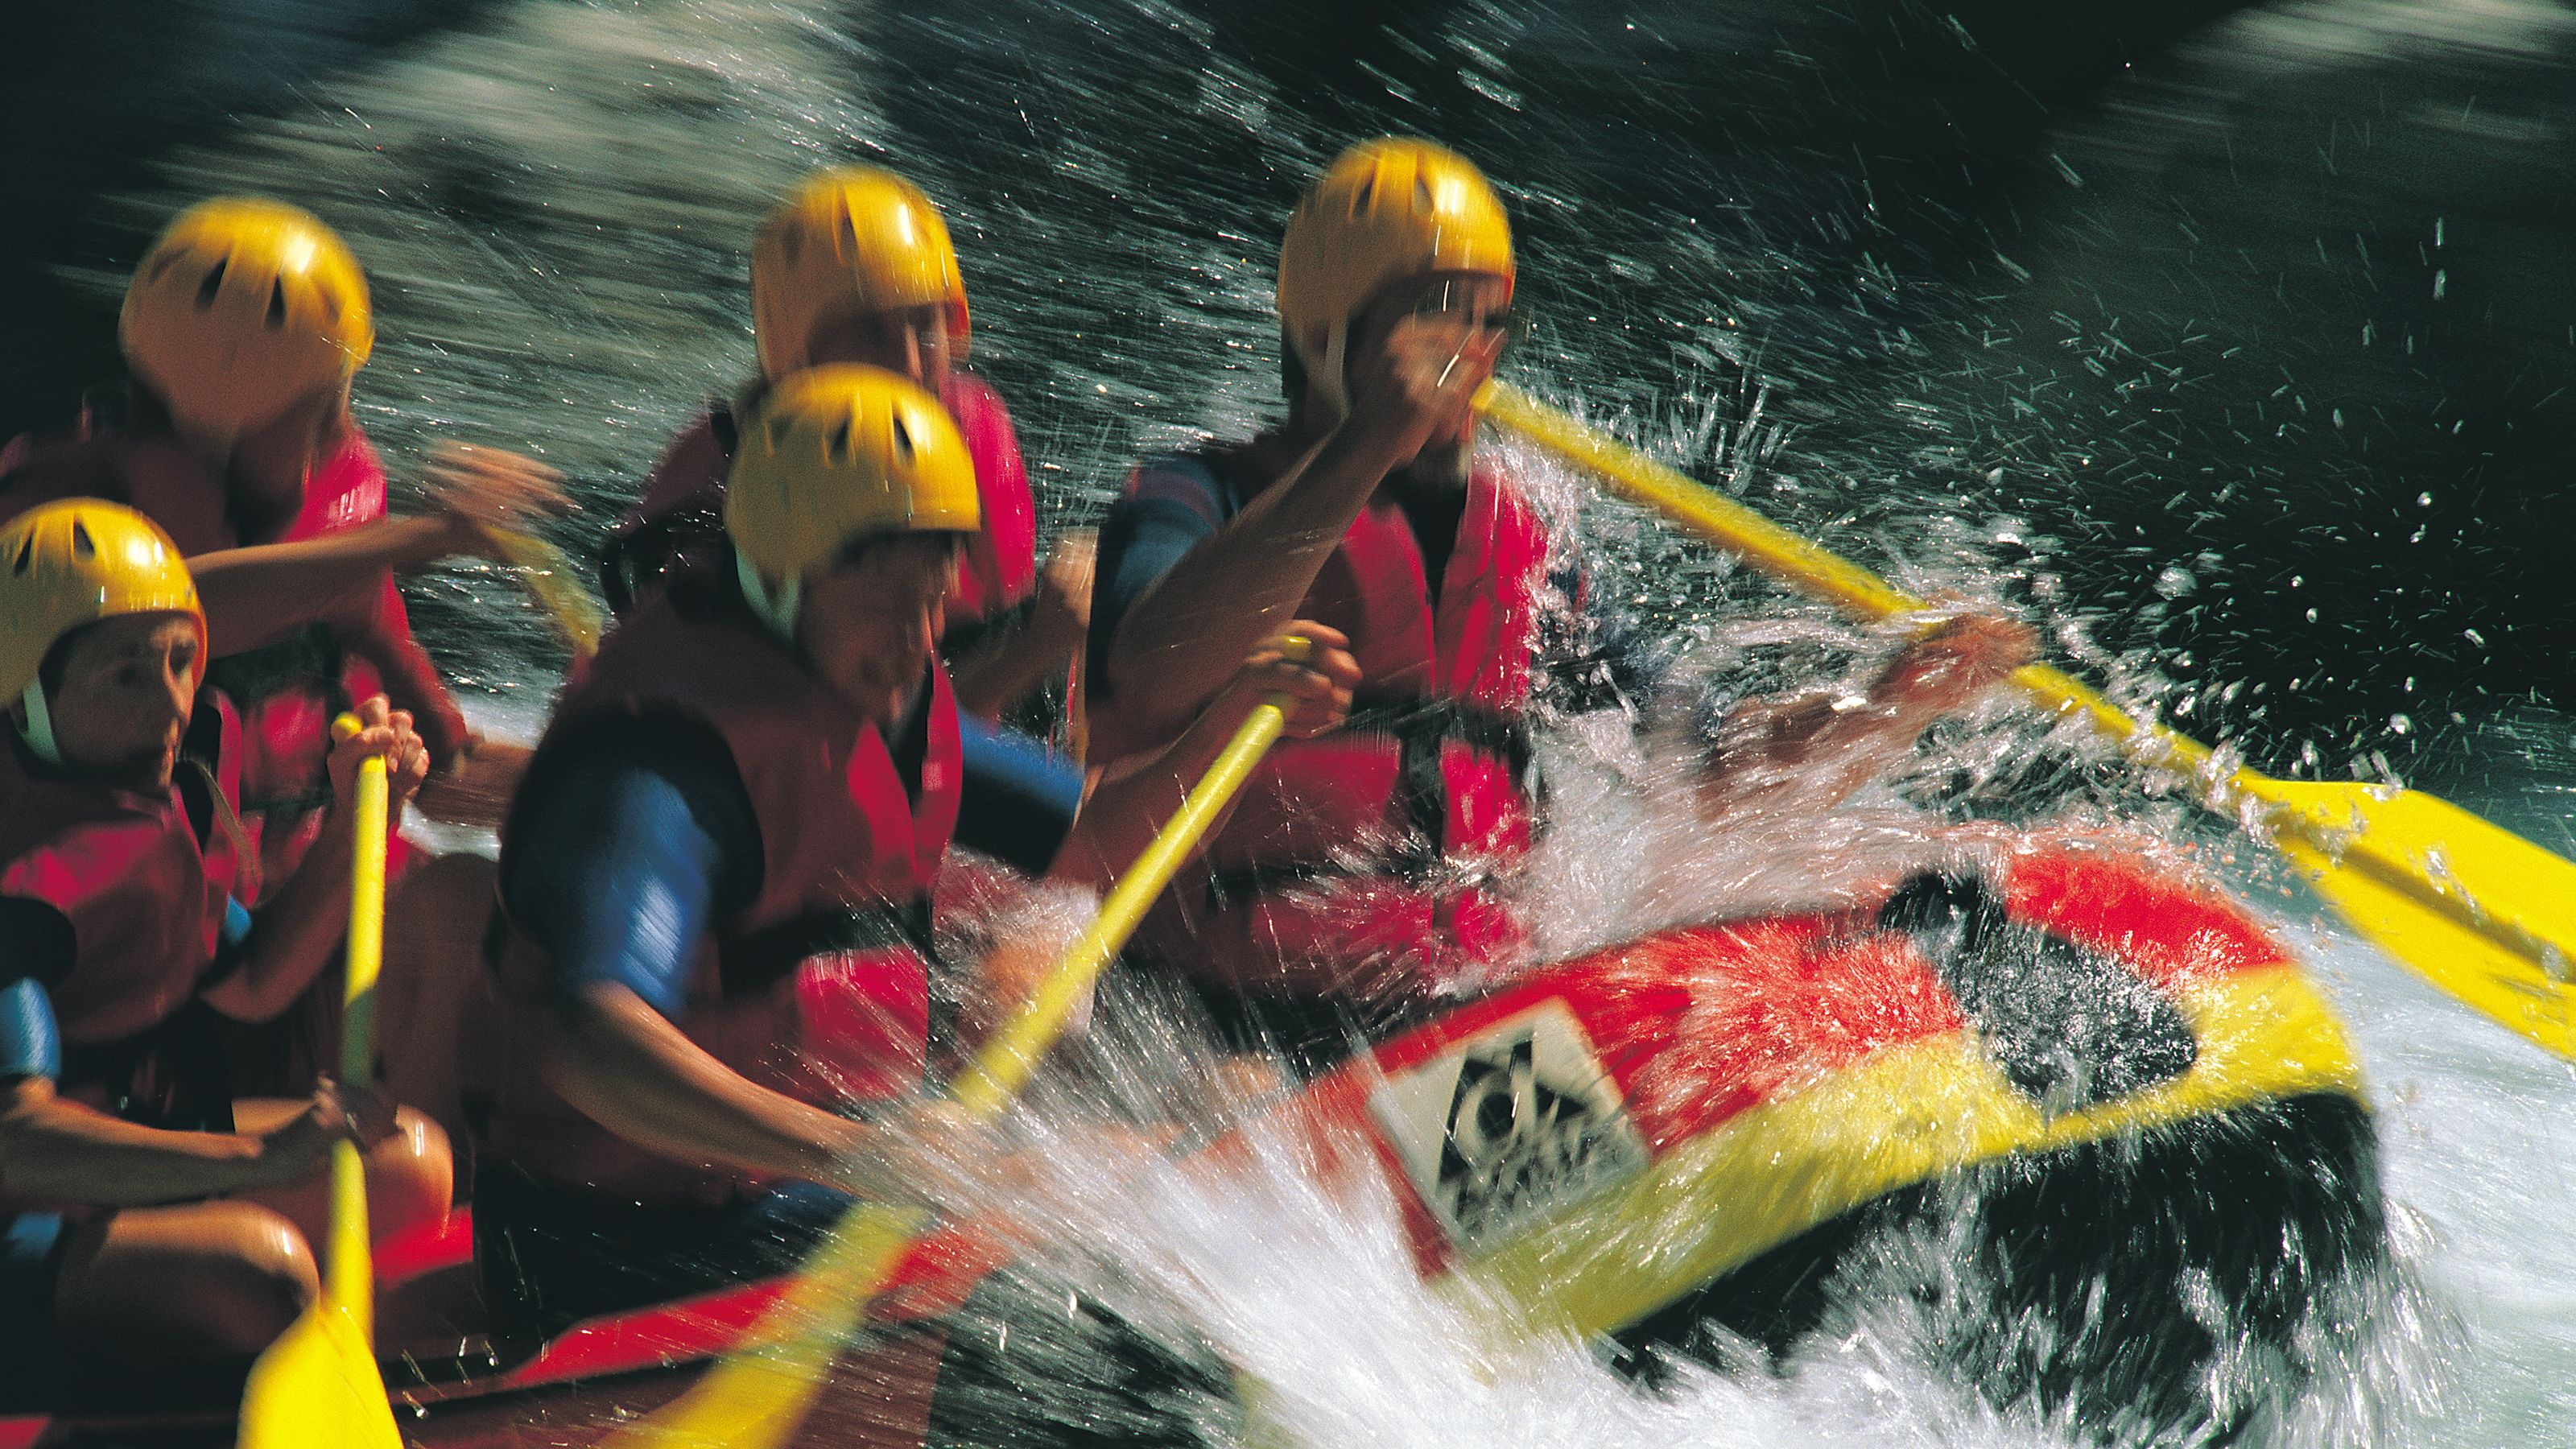 Close view of guests River Rafting on Waiau River in Christchurch